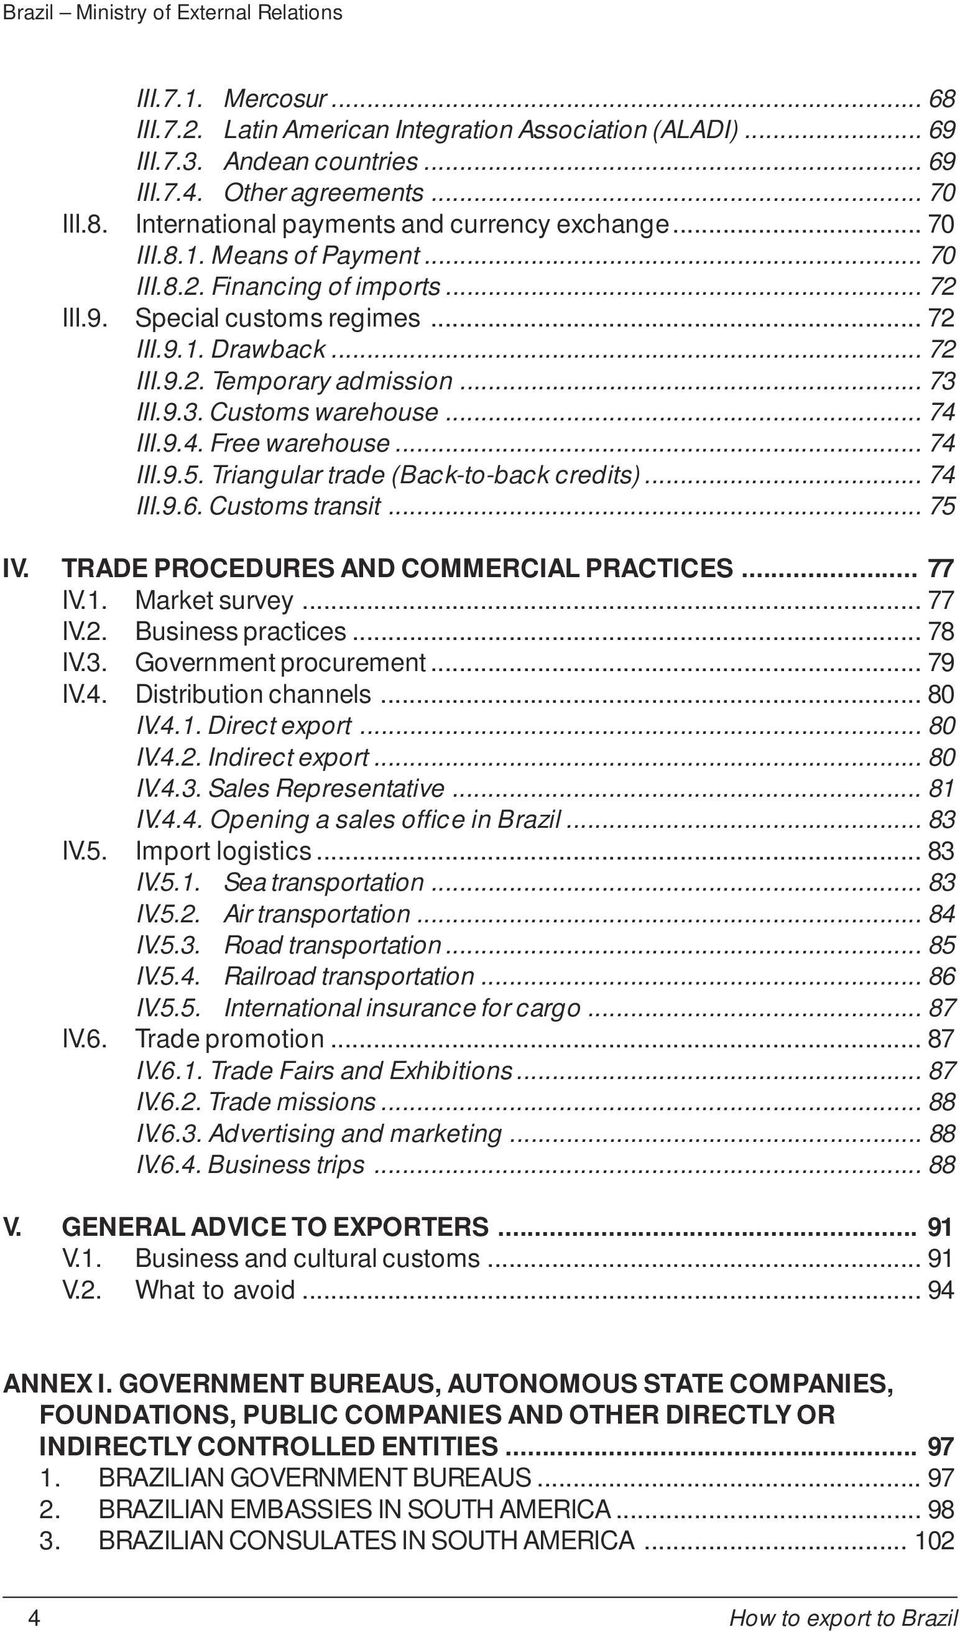 .. 74 III.9.4. Free warehouse... 74 III.9.5. Triangular trade (Back-to-back credits)... 74 III.9.6. Customs transit... 75 IV. TRADE PROCEDURES AND COMMERCIAL PRACTICES... 77 IV.1. Market survey.